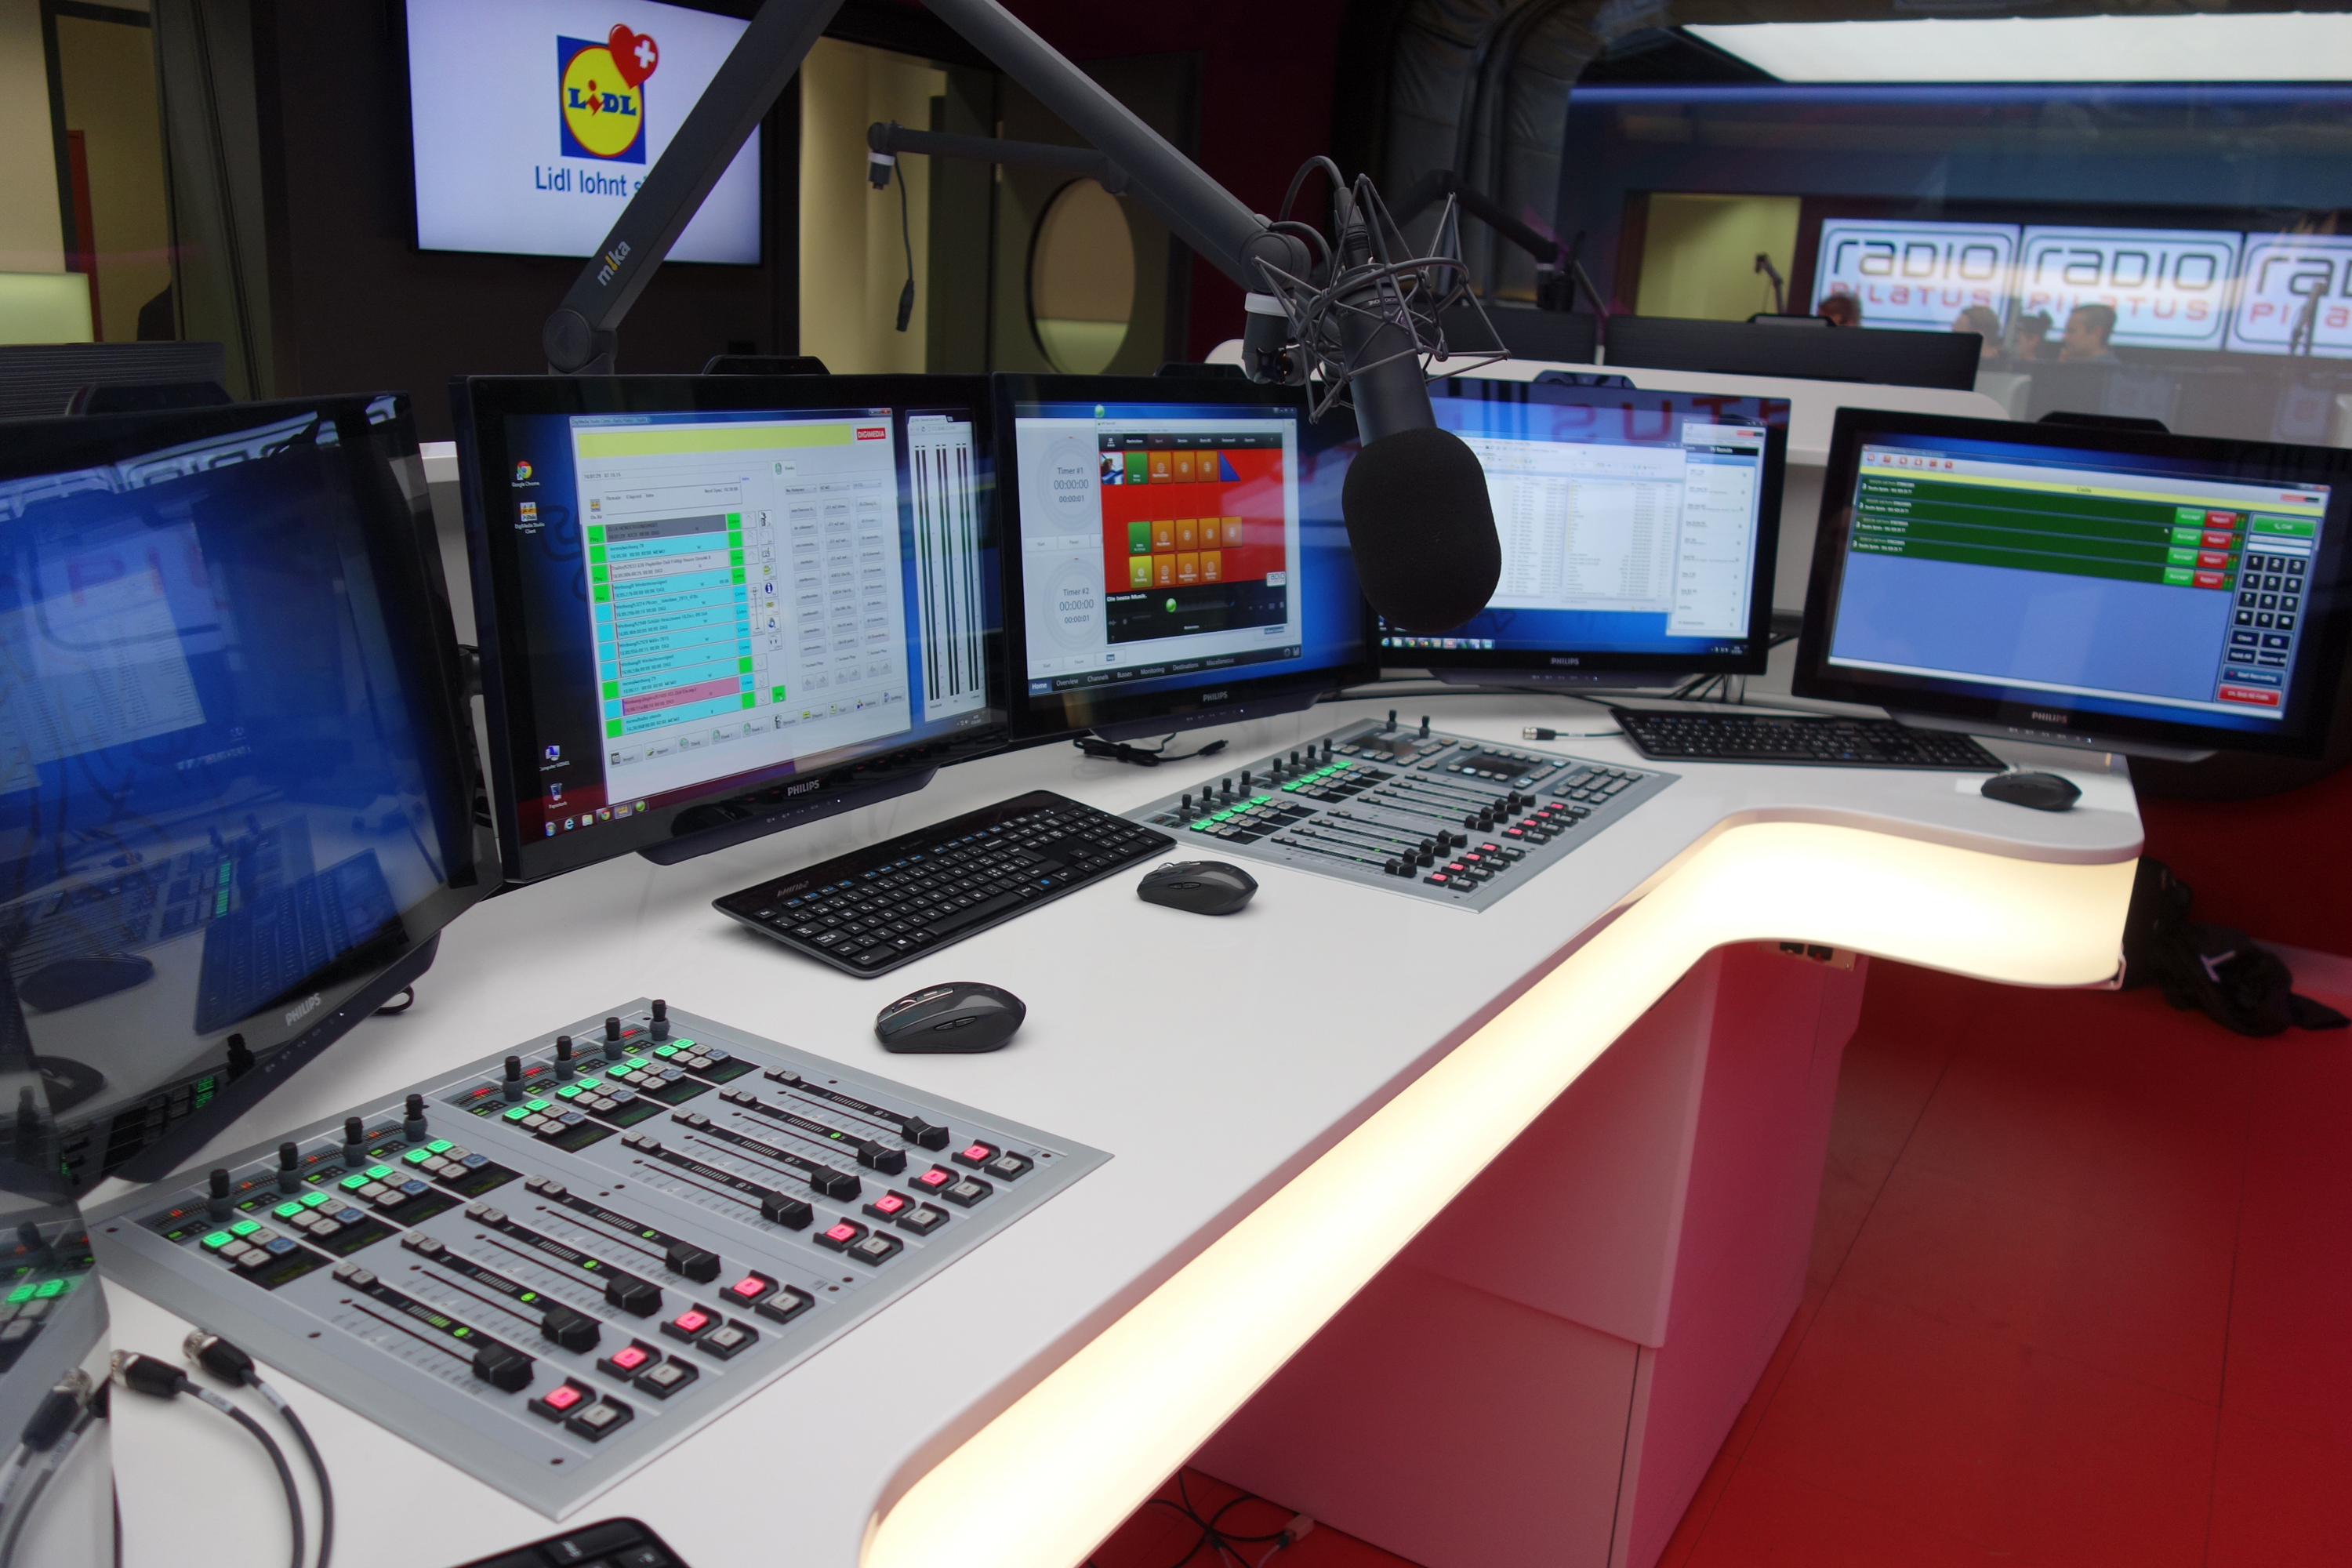 2015 11 Radio-Pilatus Stagetec OnAir flex 3